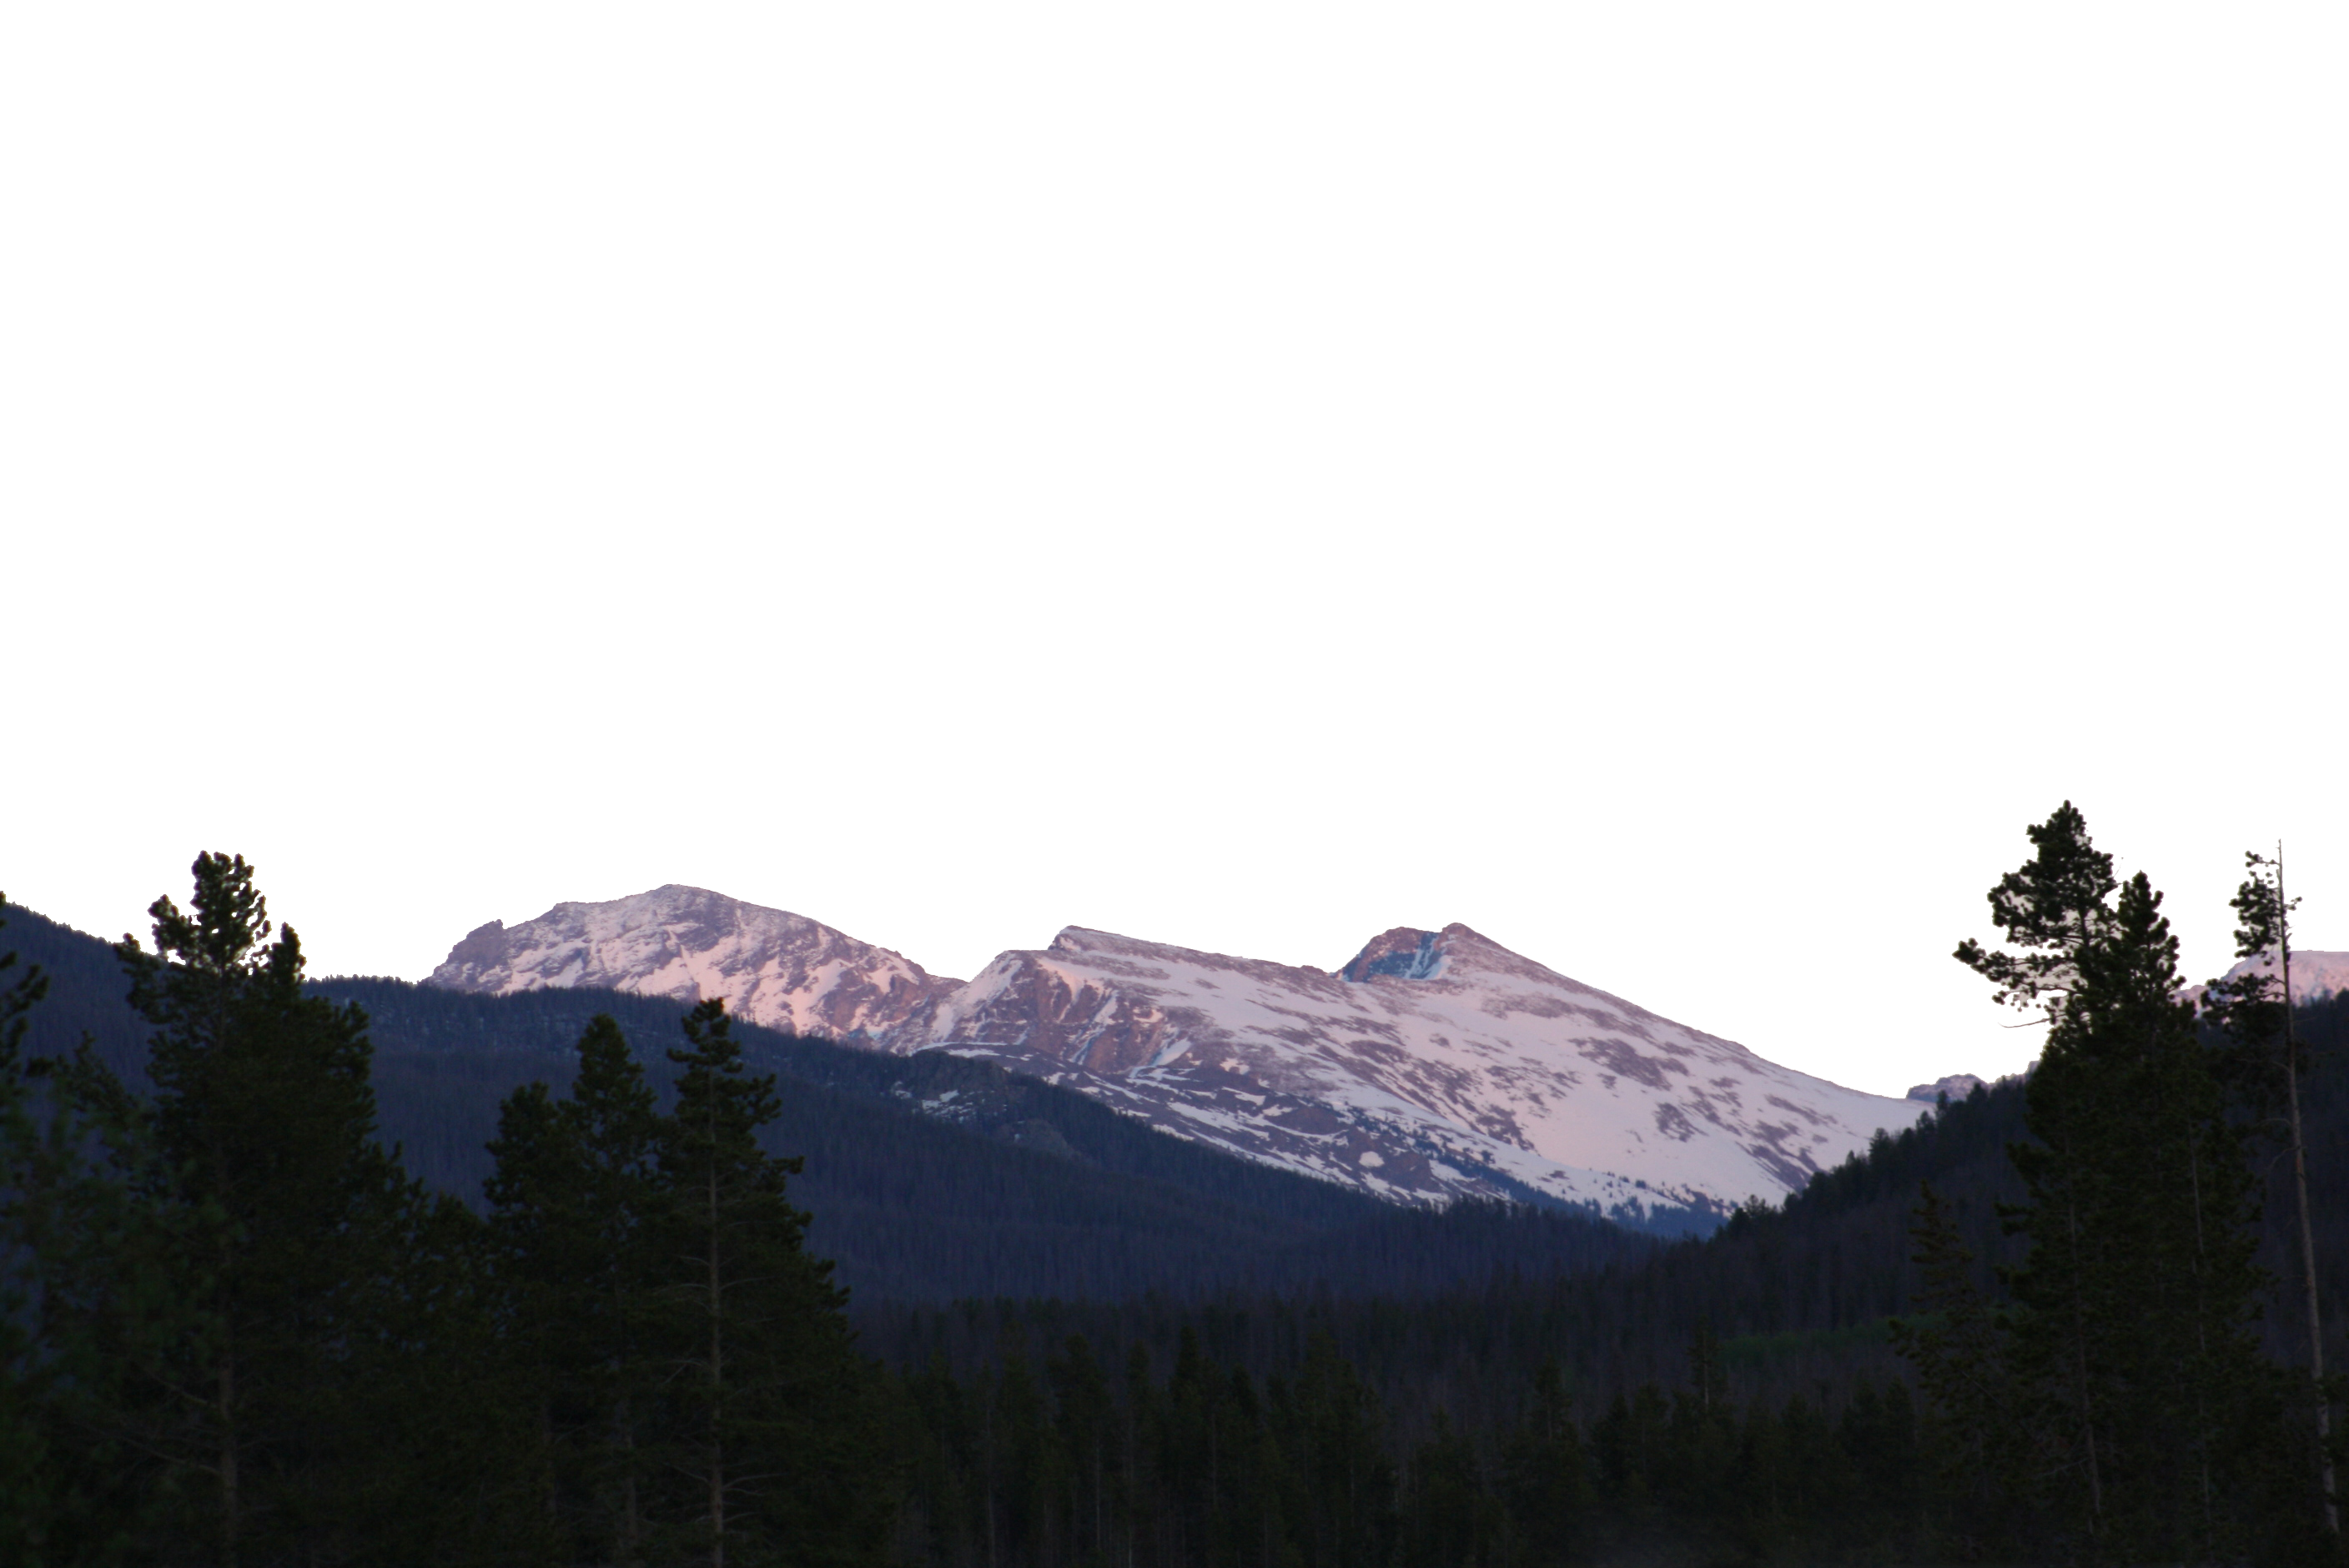 Mountain Transparent image #36270